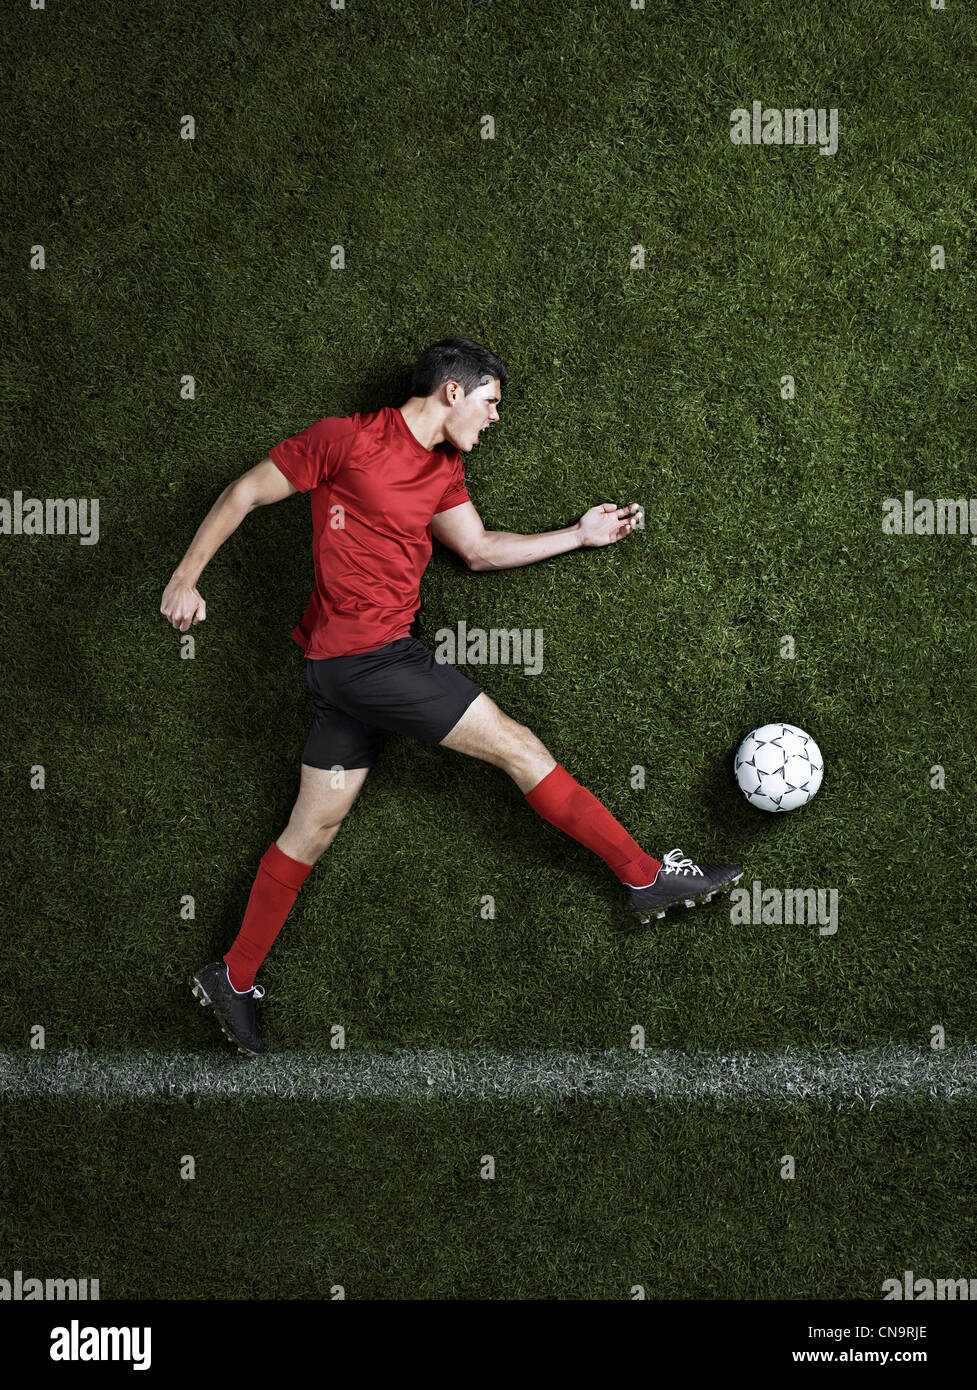 Soccer player laying on pitch - Stock Image